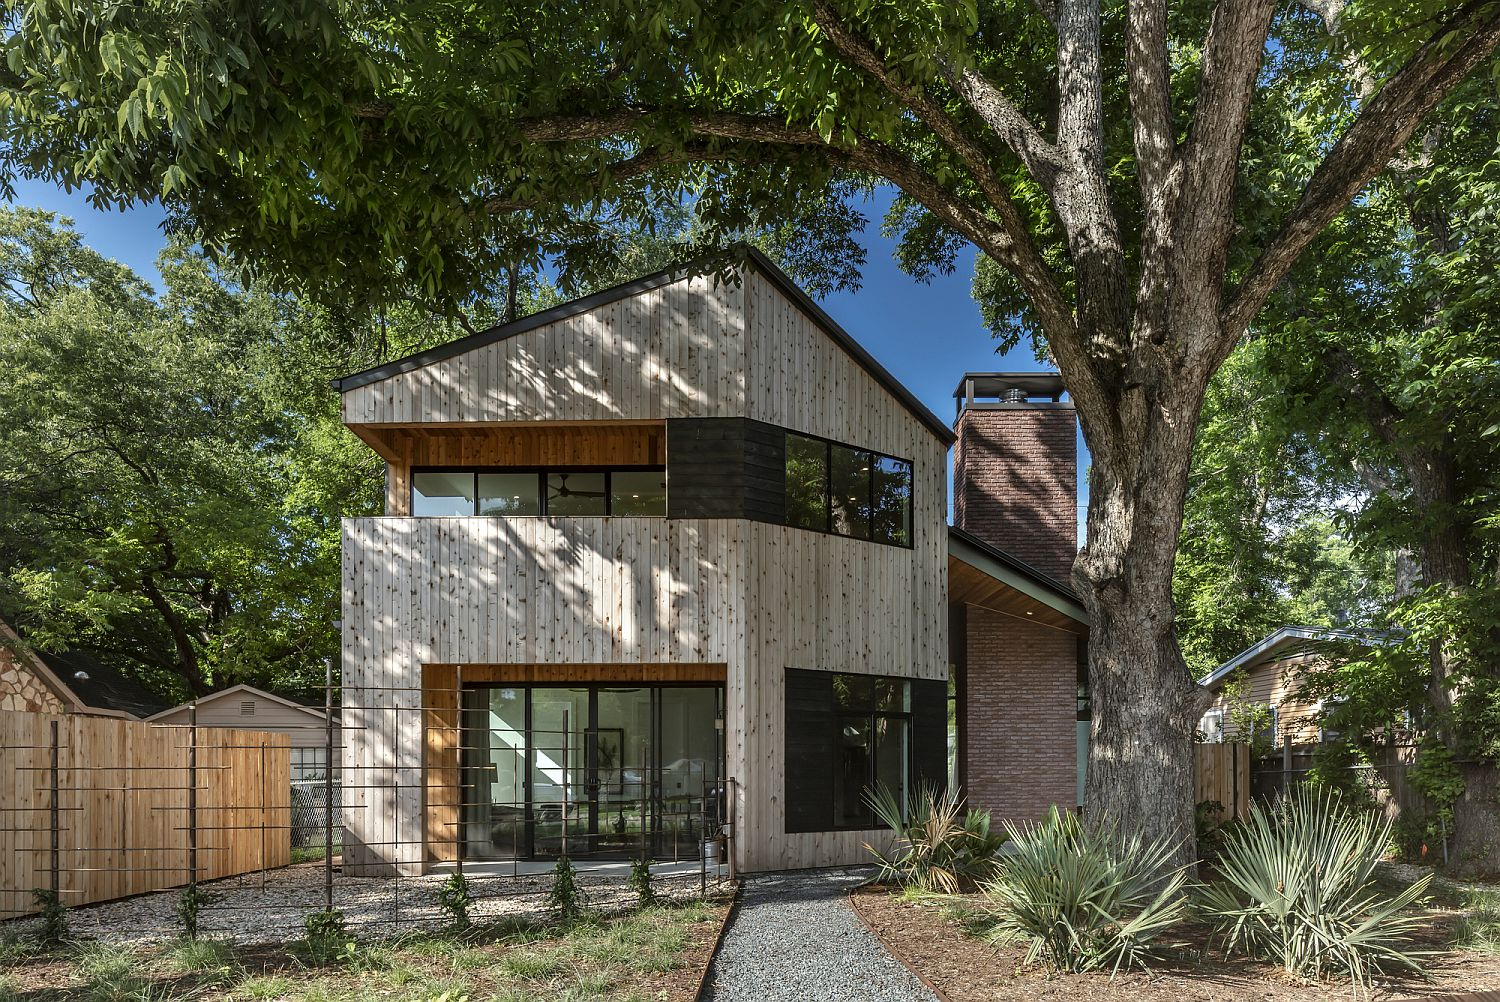 Fabulous wood facade of the house feels smart and stylish